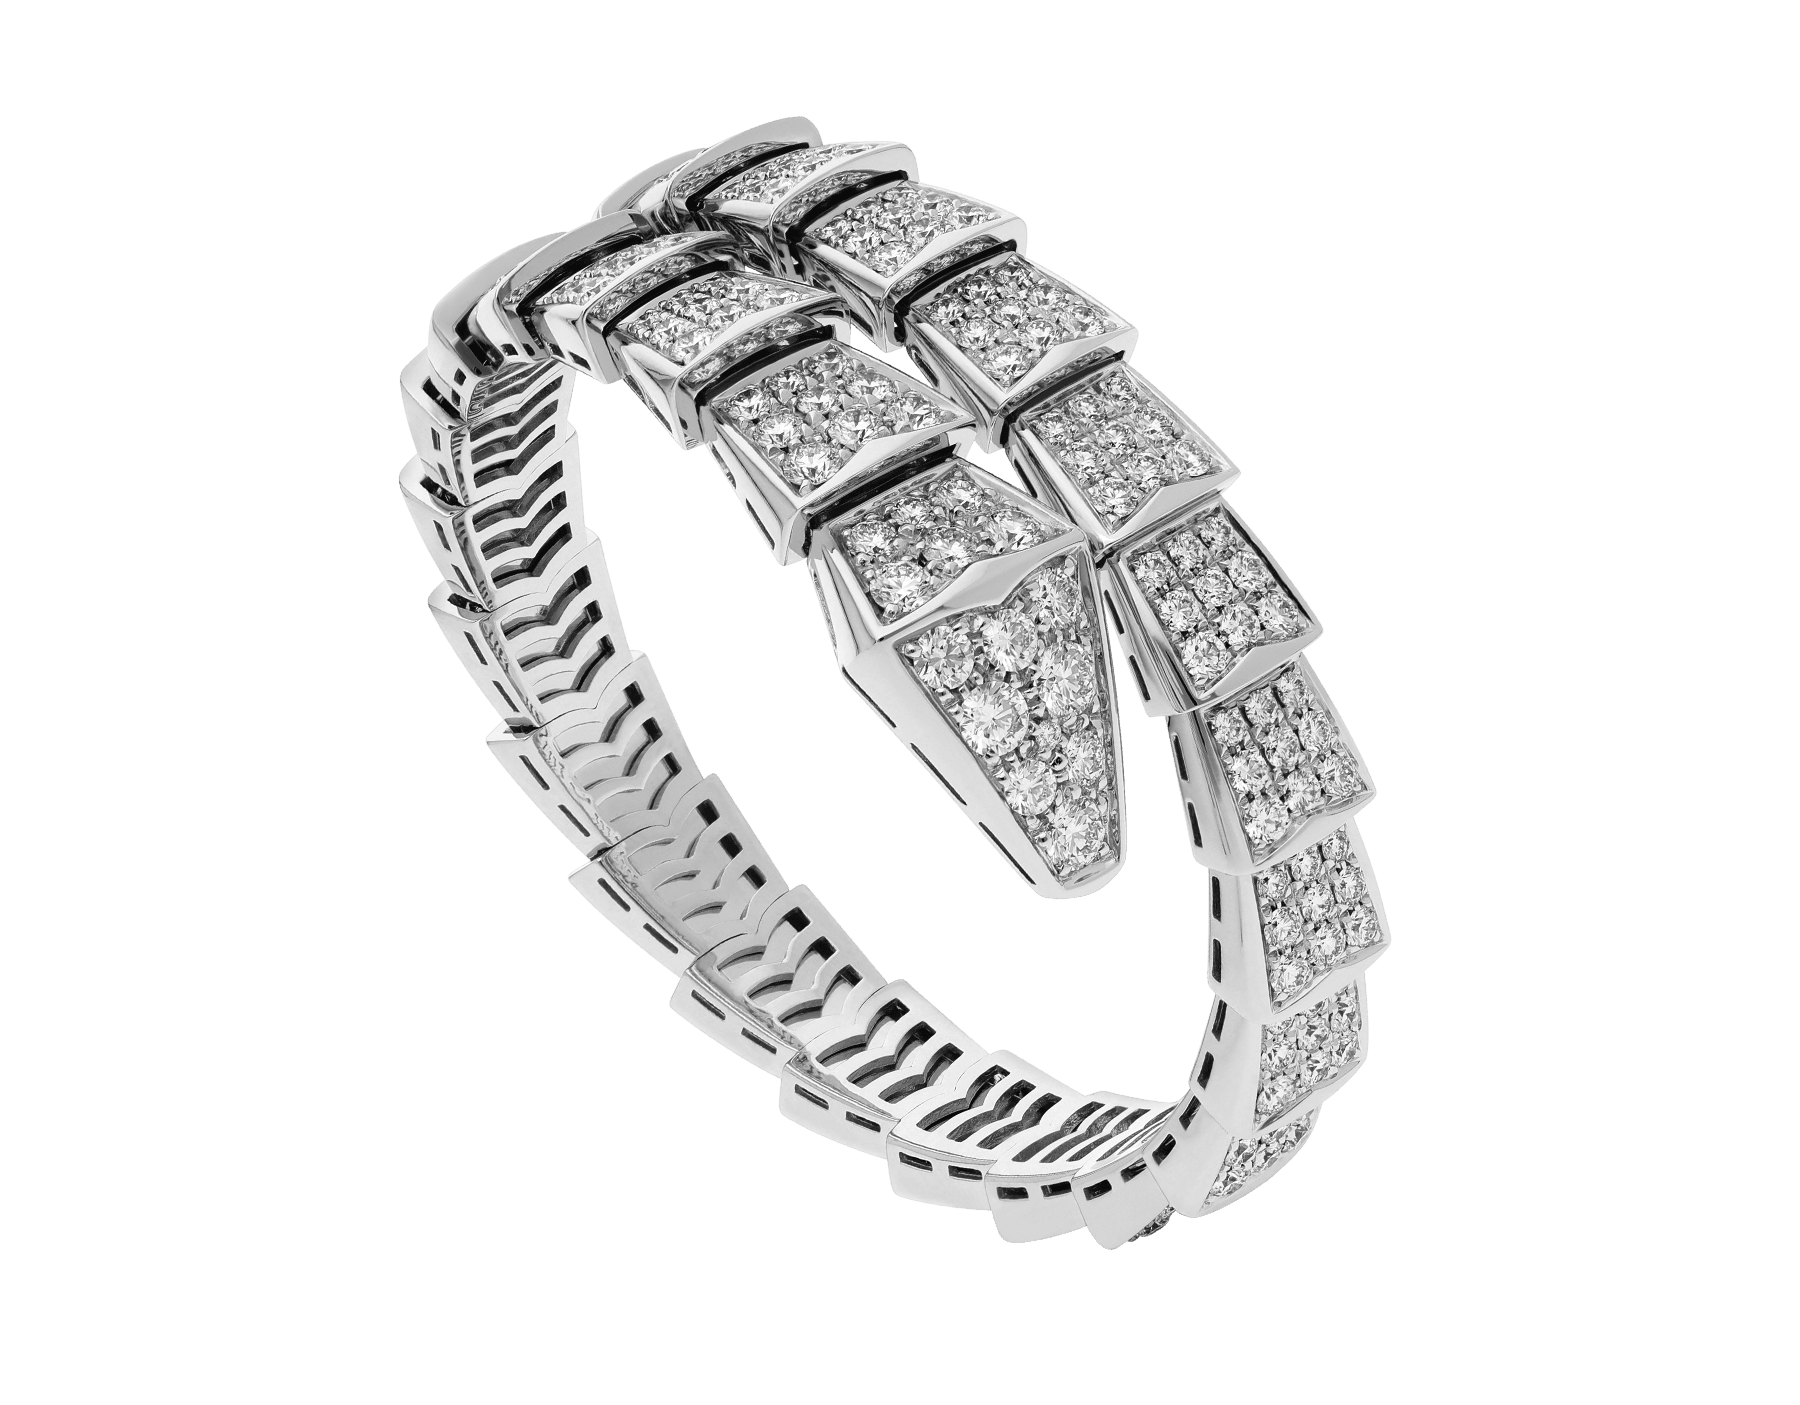 Serpenti Viper one-coil bracelet in 18 kt white gold, set with full pavé diamonds. BR855231 image 1